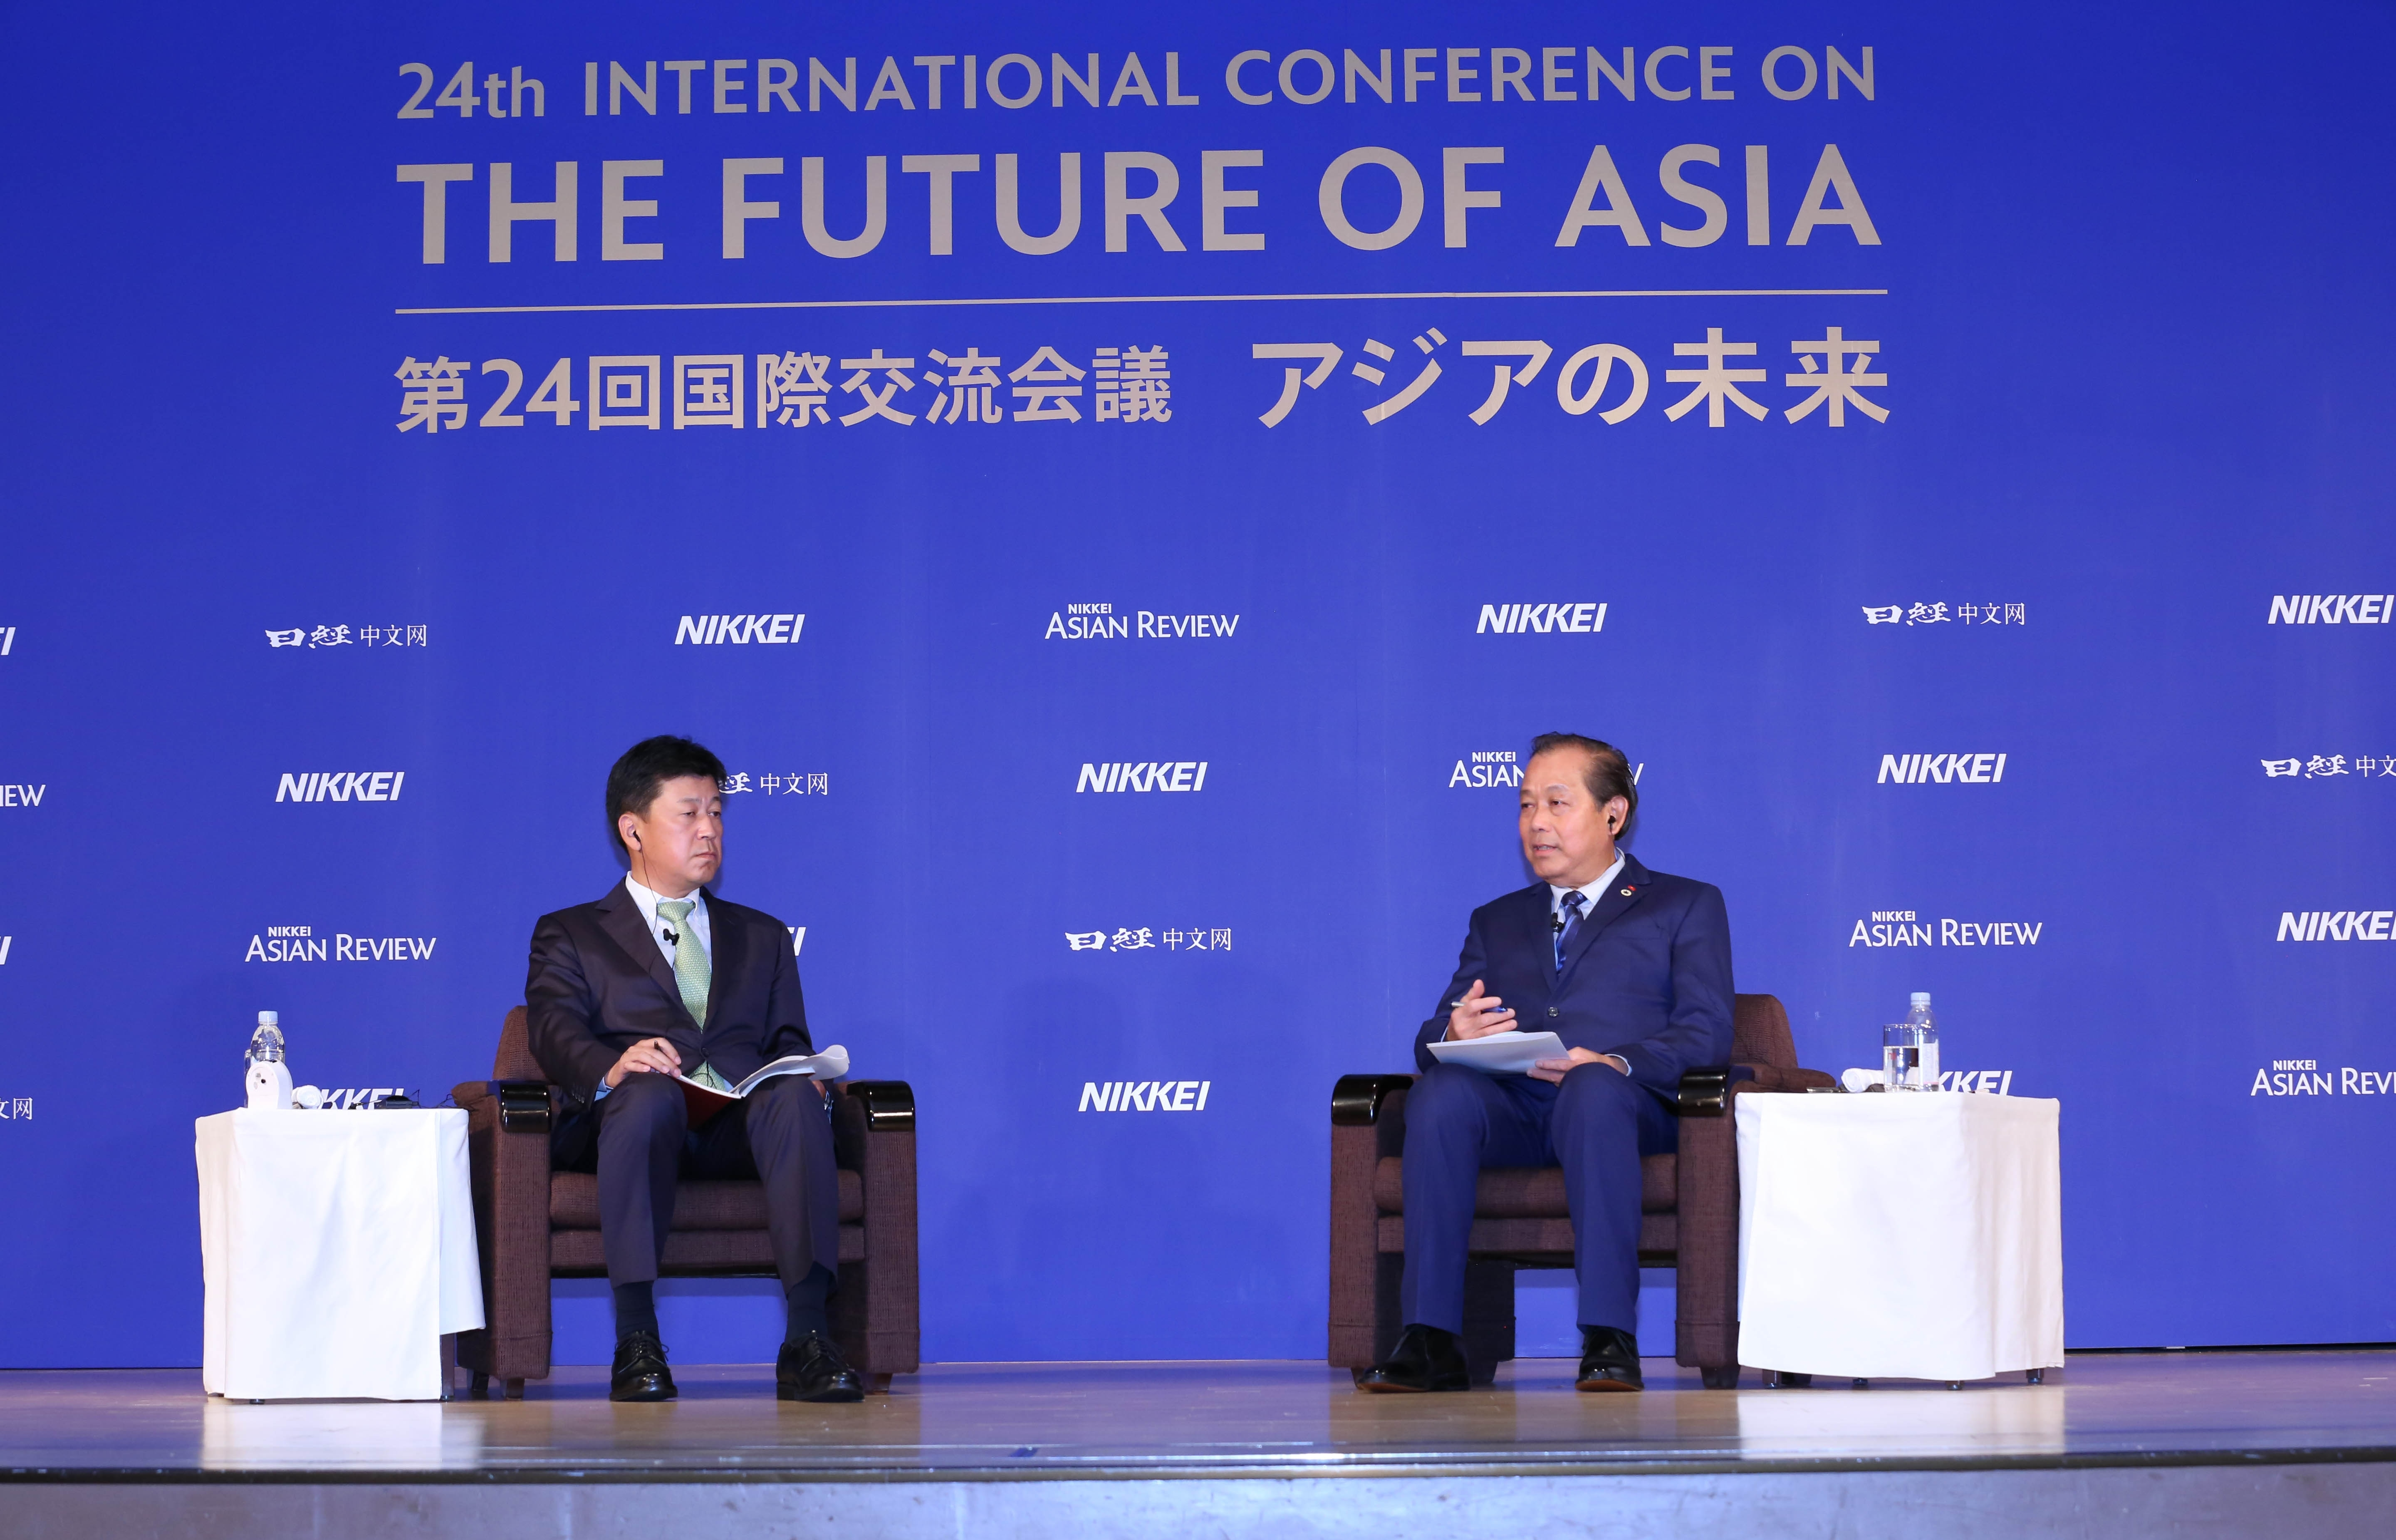 what vietnam commits to protect foreign investors at conference on asia future